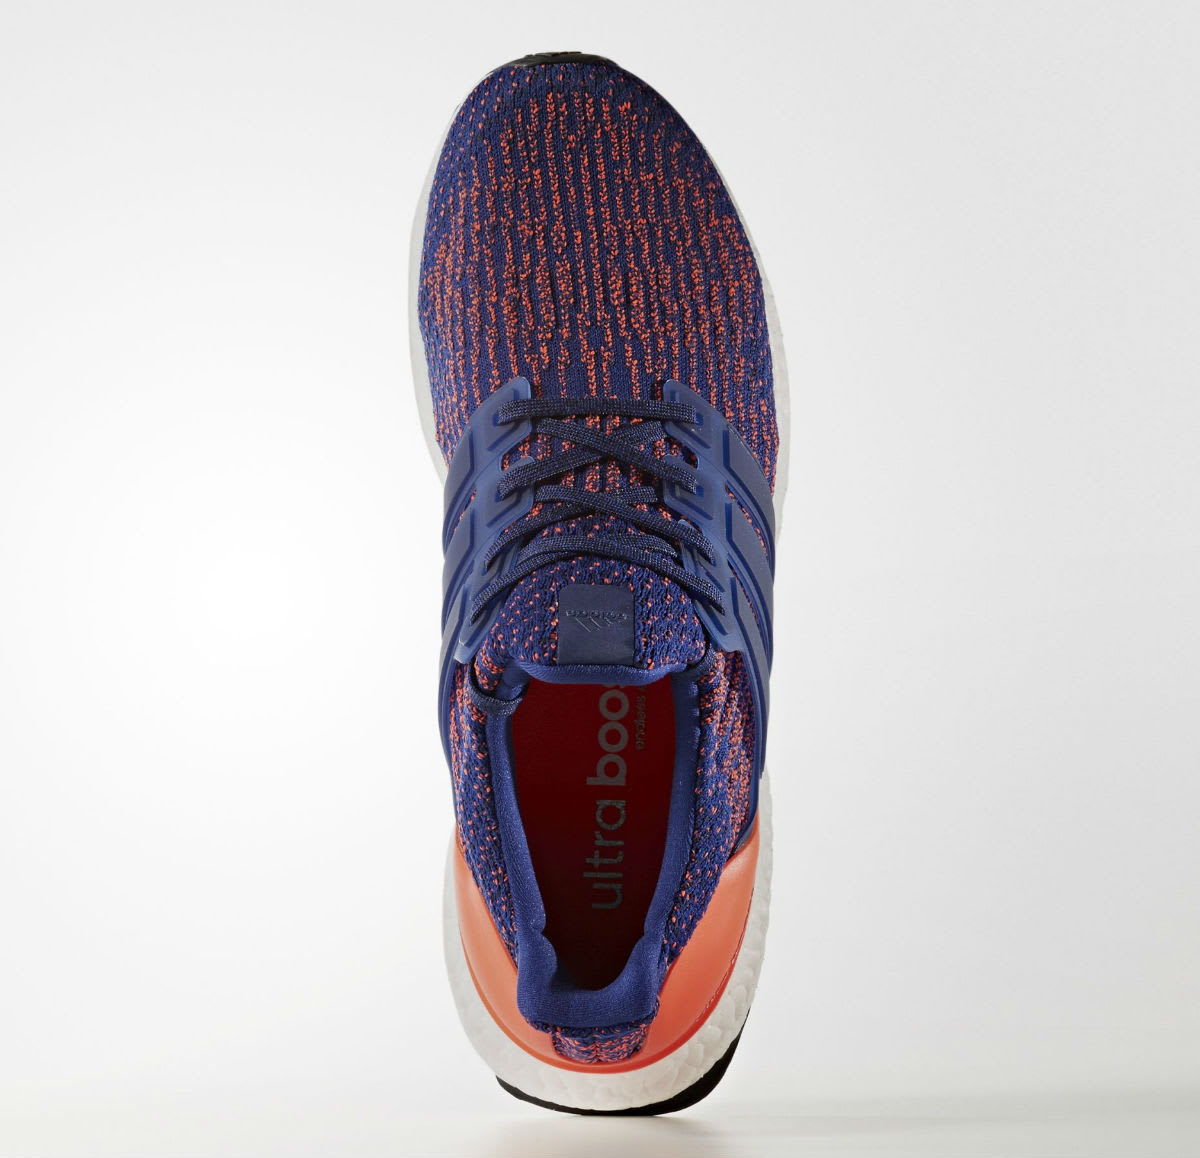 Adidas Ultra Boost 3.0 Purple Orange Release Date Top S82020